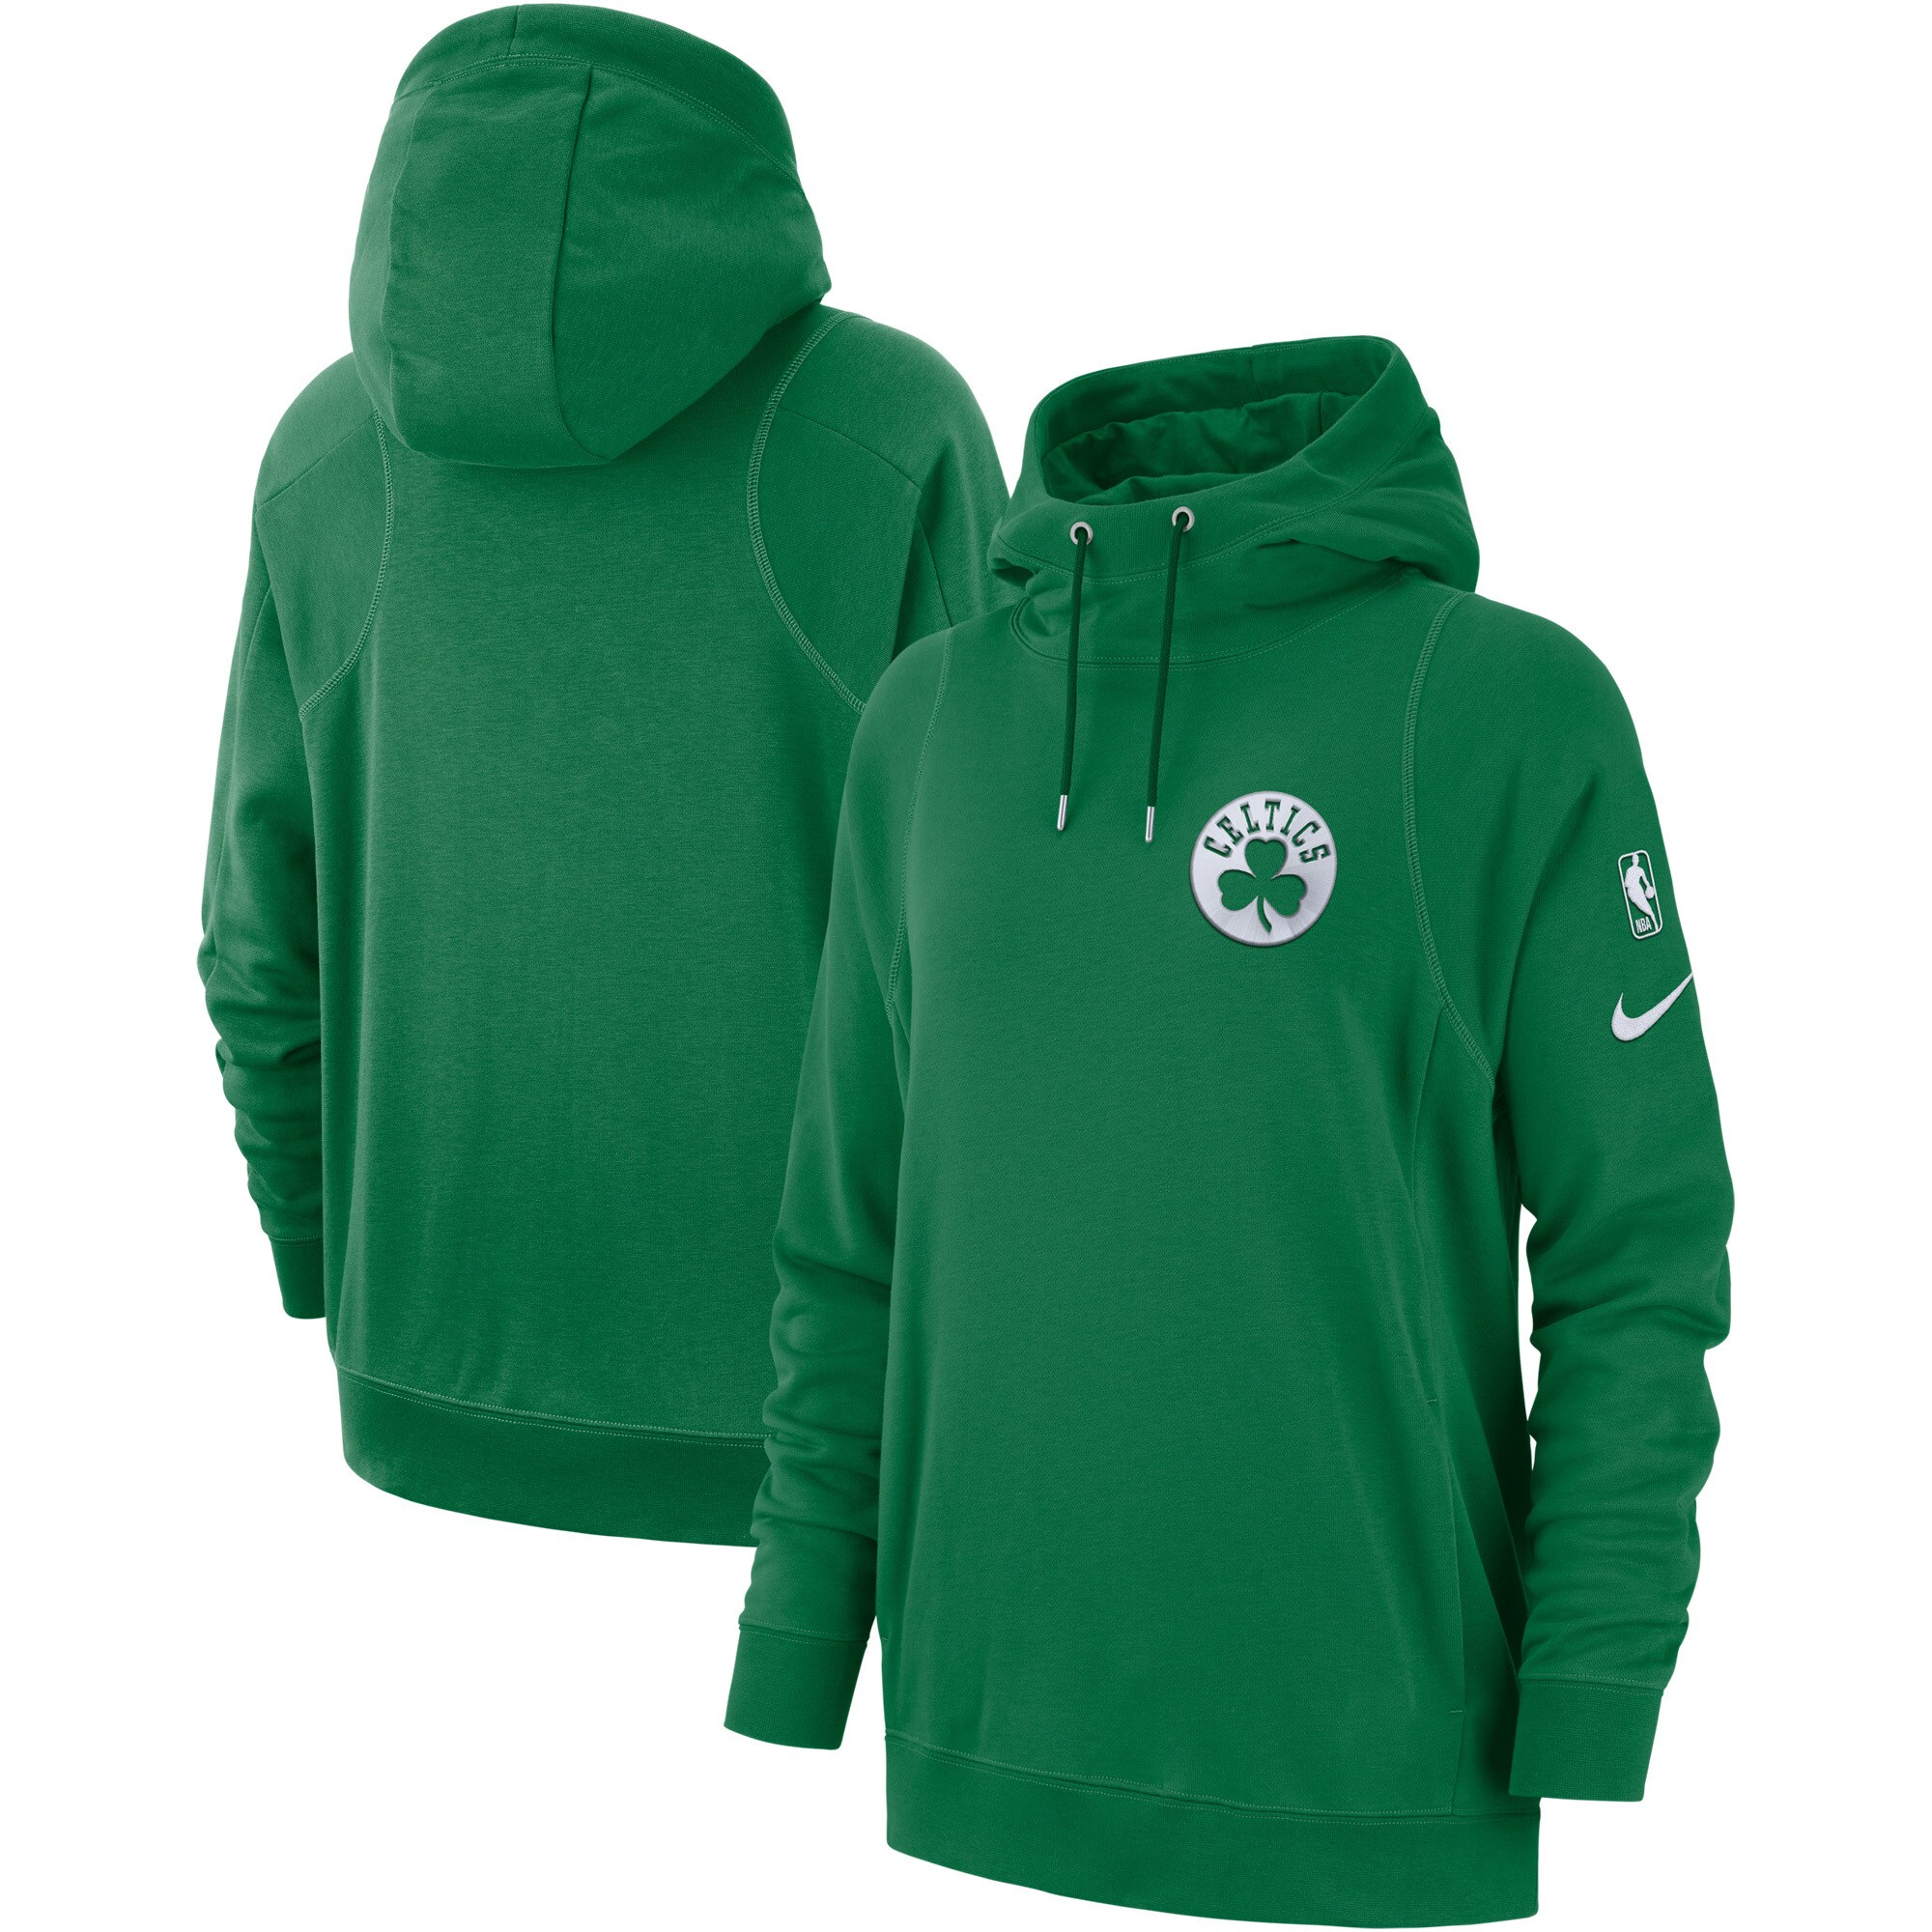 Boston Celtics Nike Women's Courtside French Terry Pullover Hoodie - Kelly Green